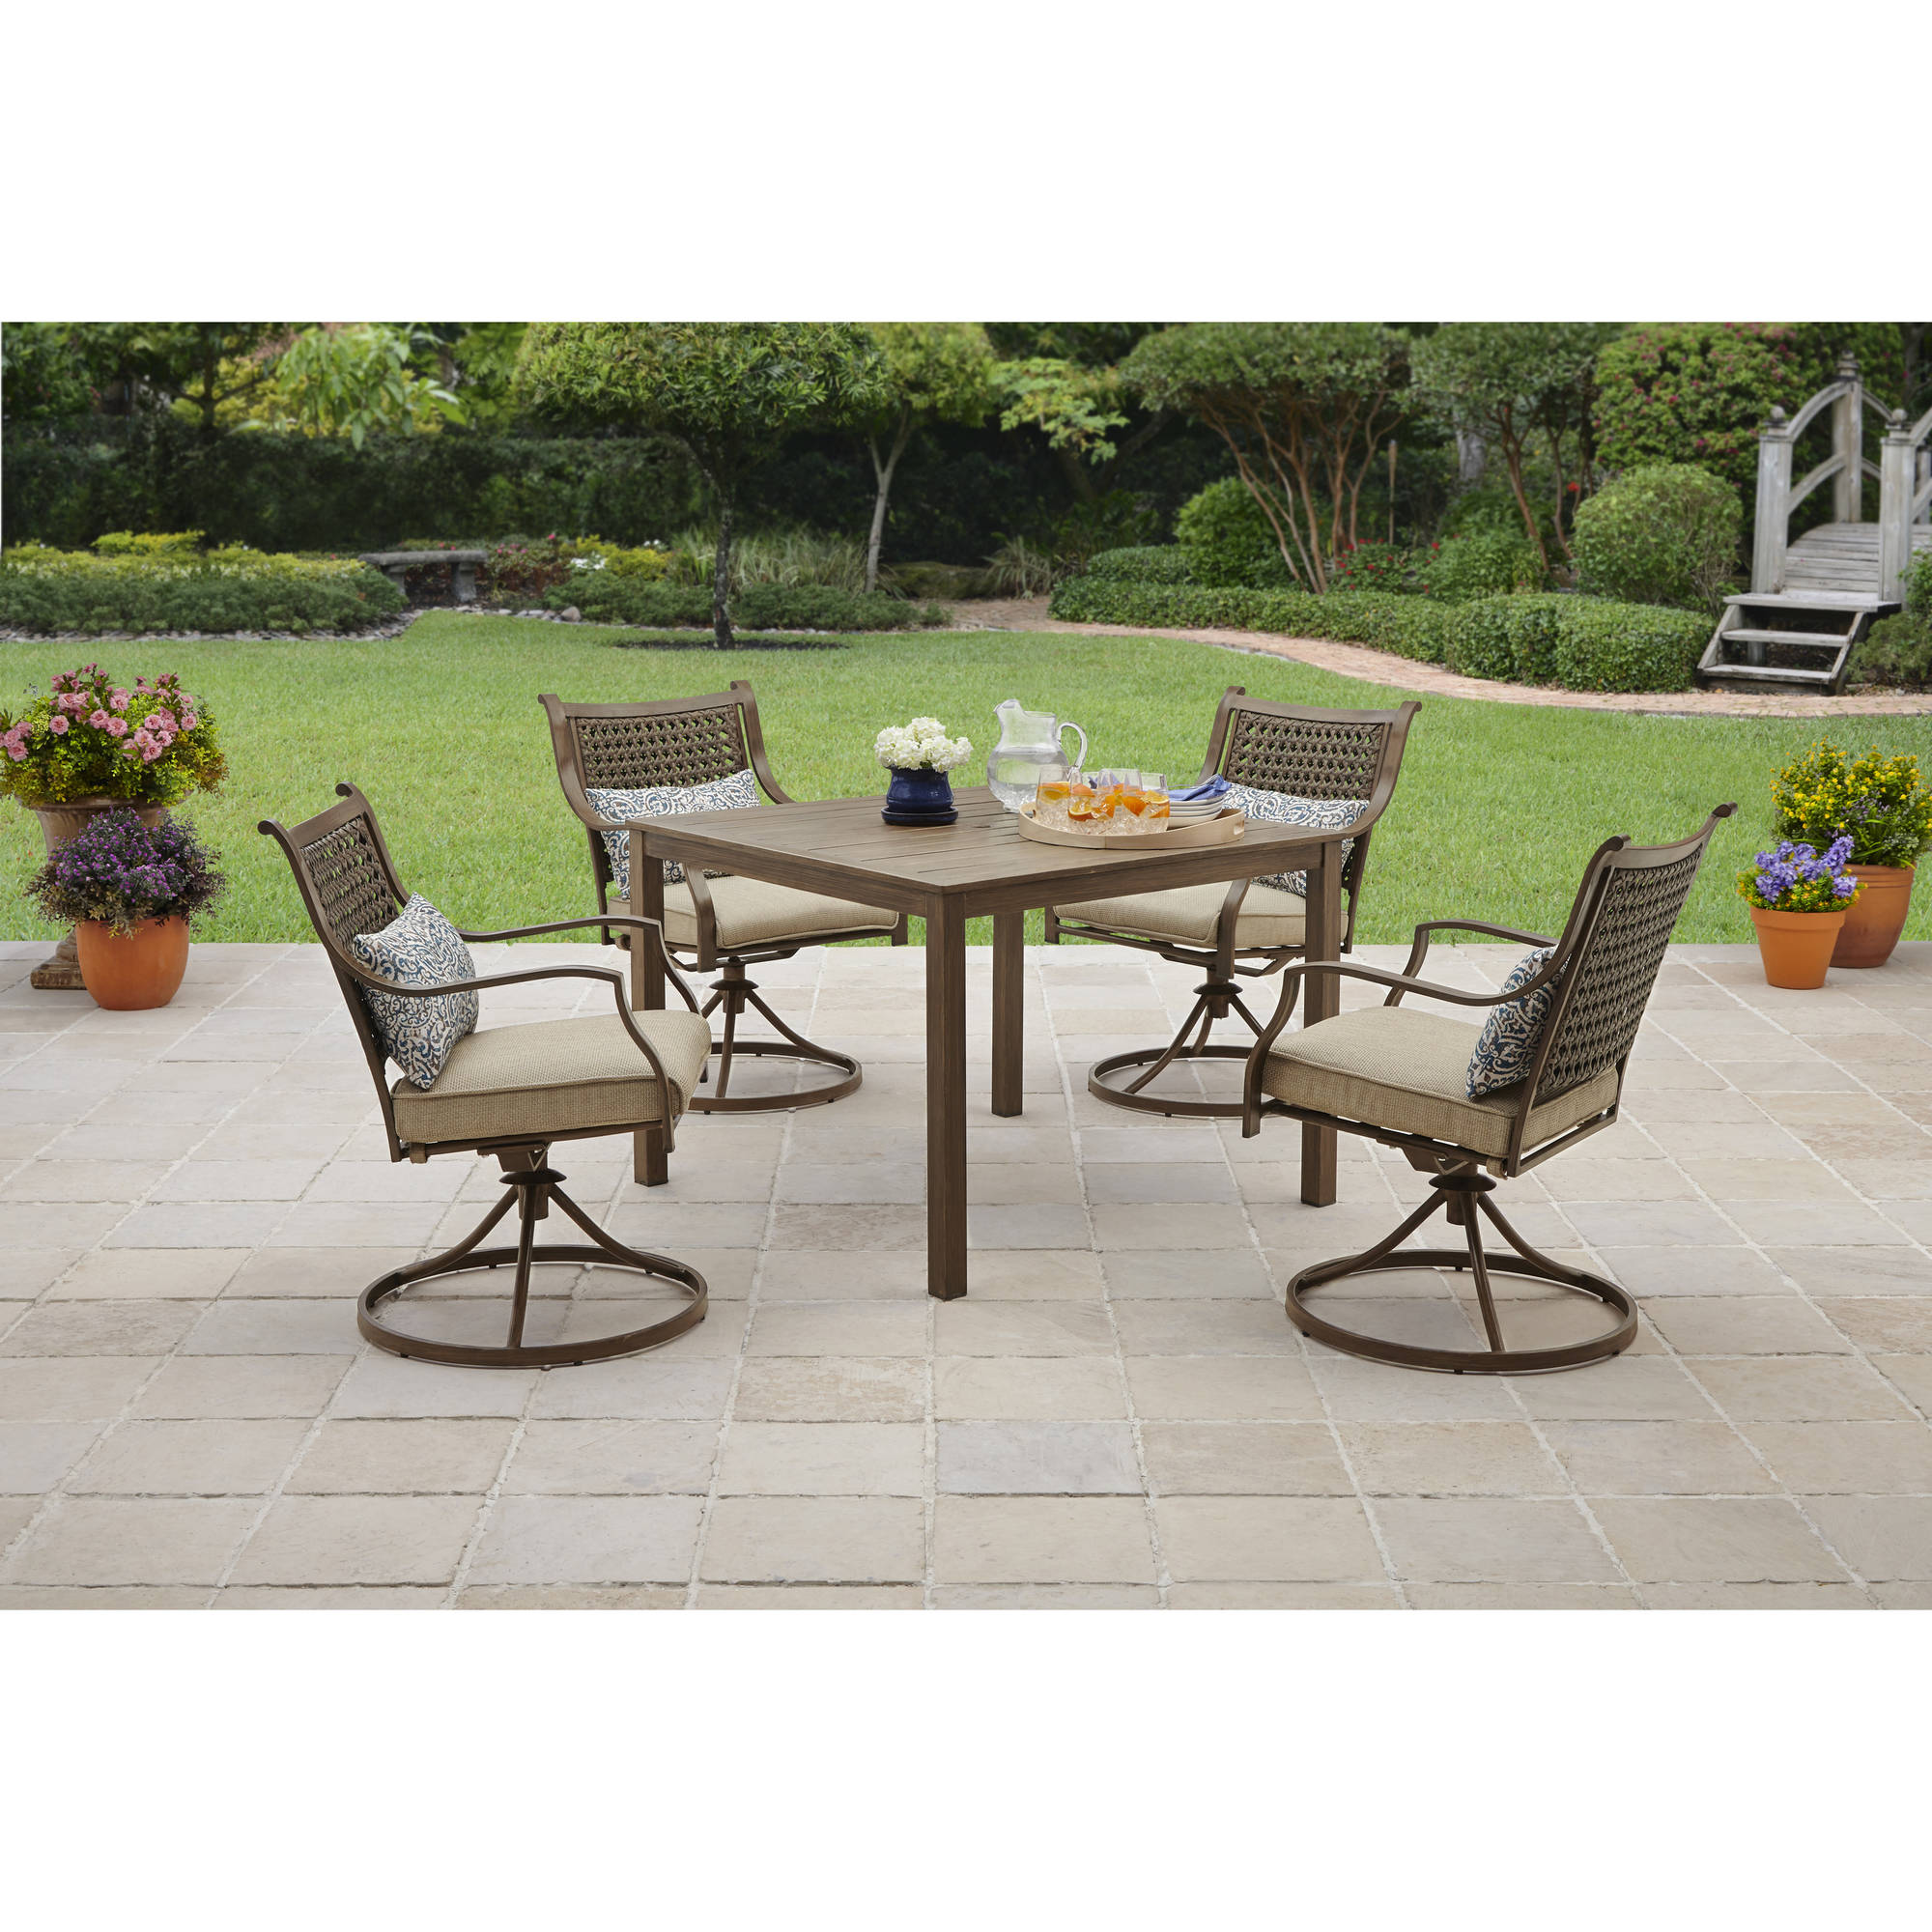 Better Homes and Gardens Lynnhaven Park 5 Piece Outdoor Dining Set